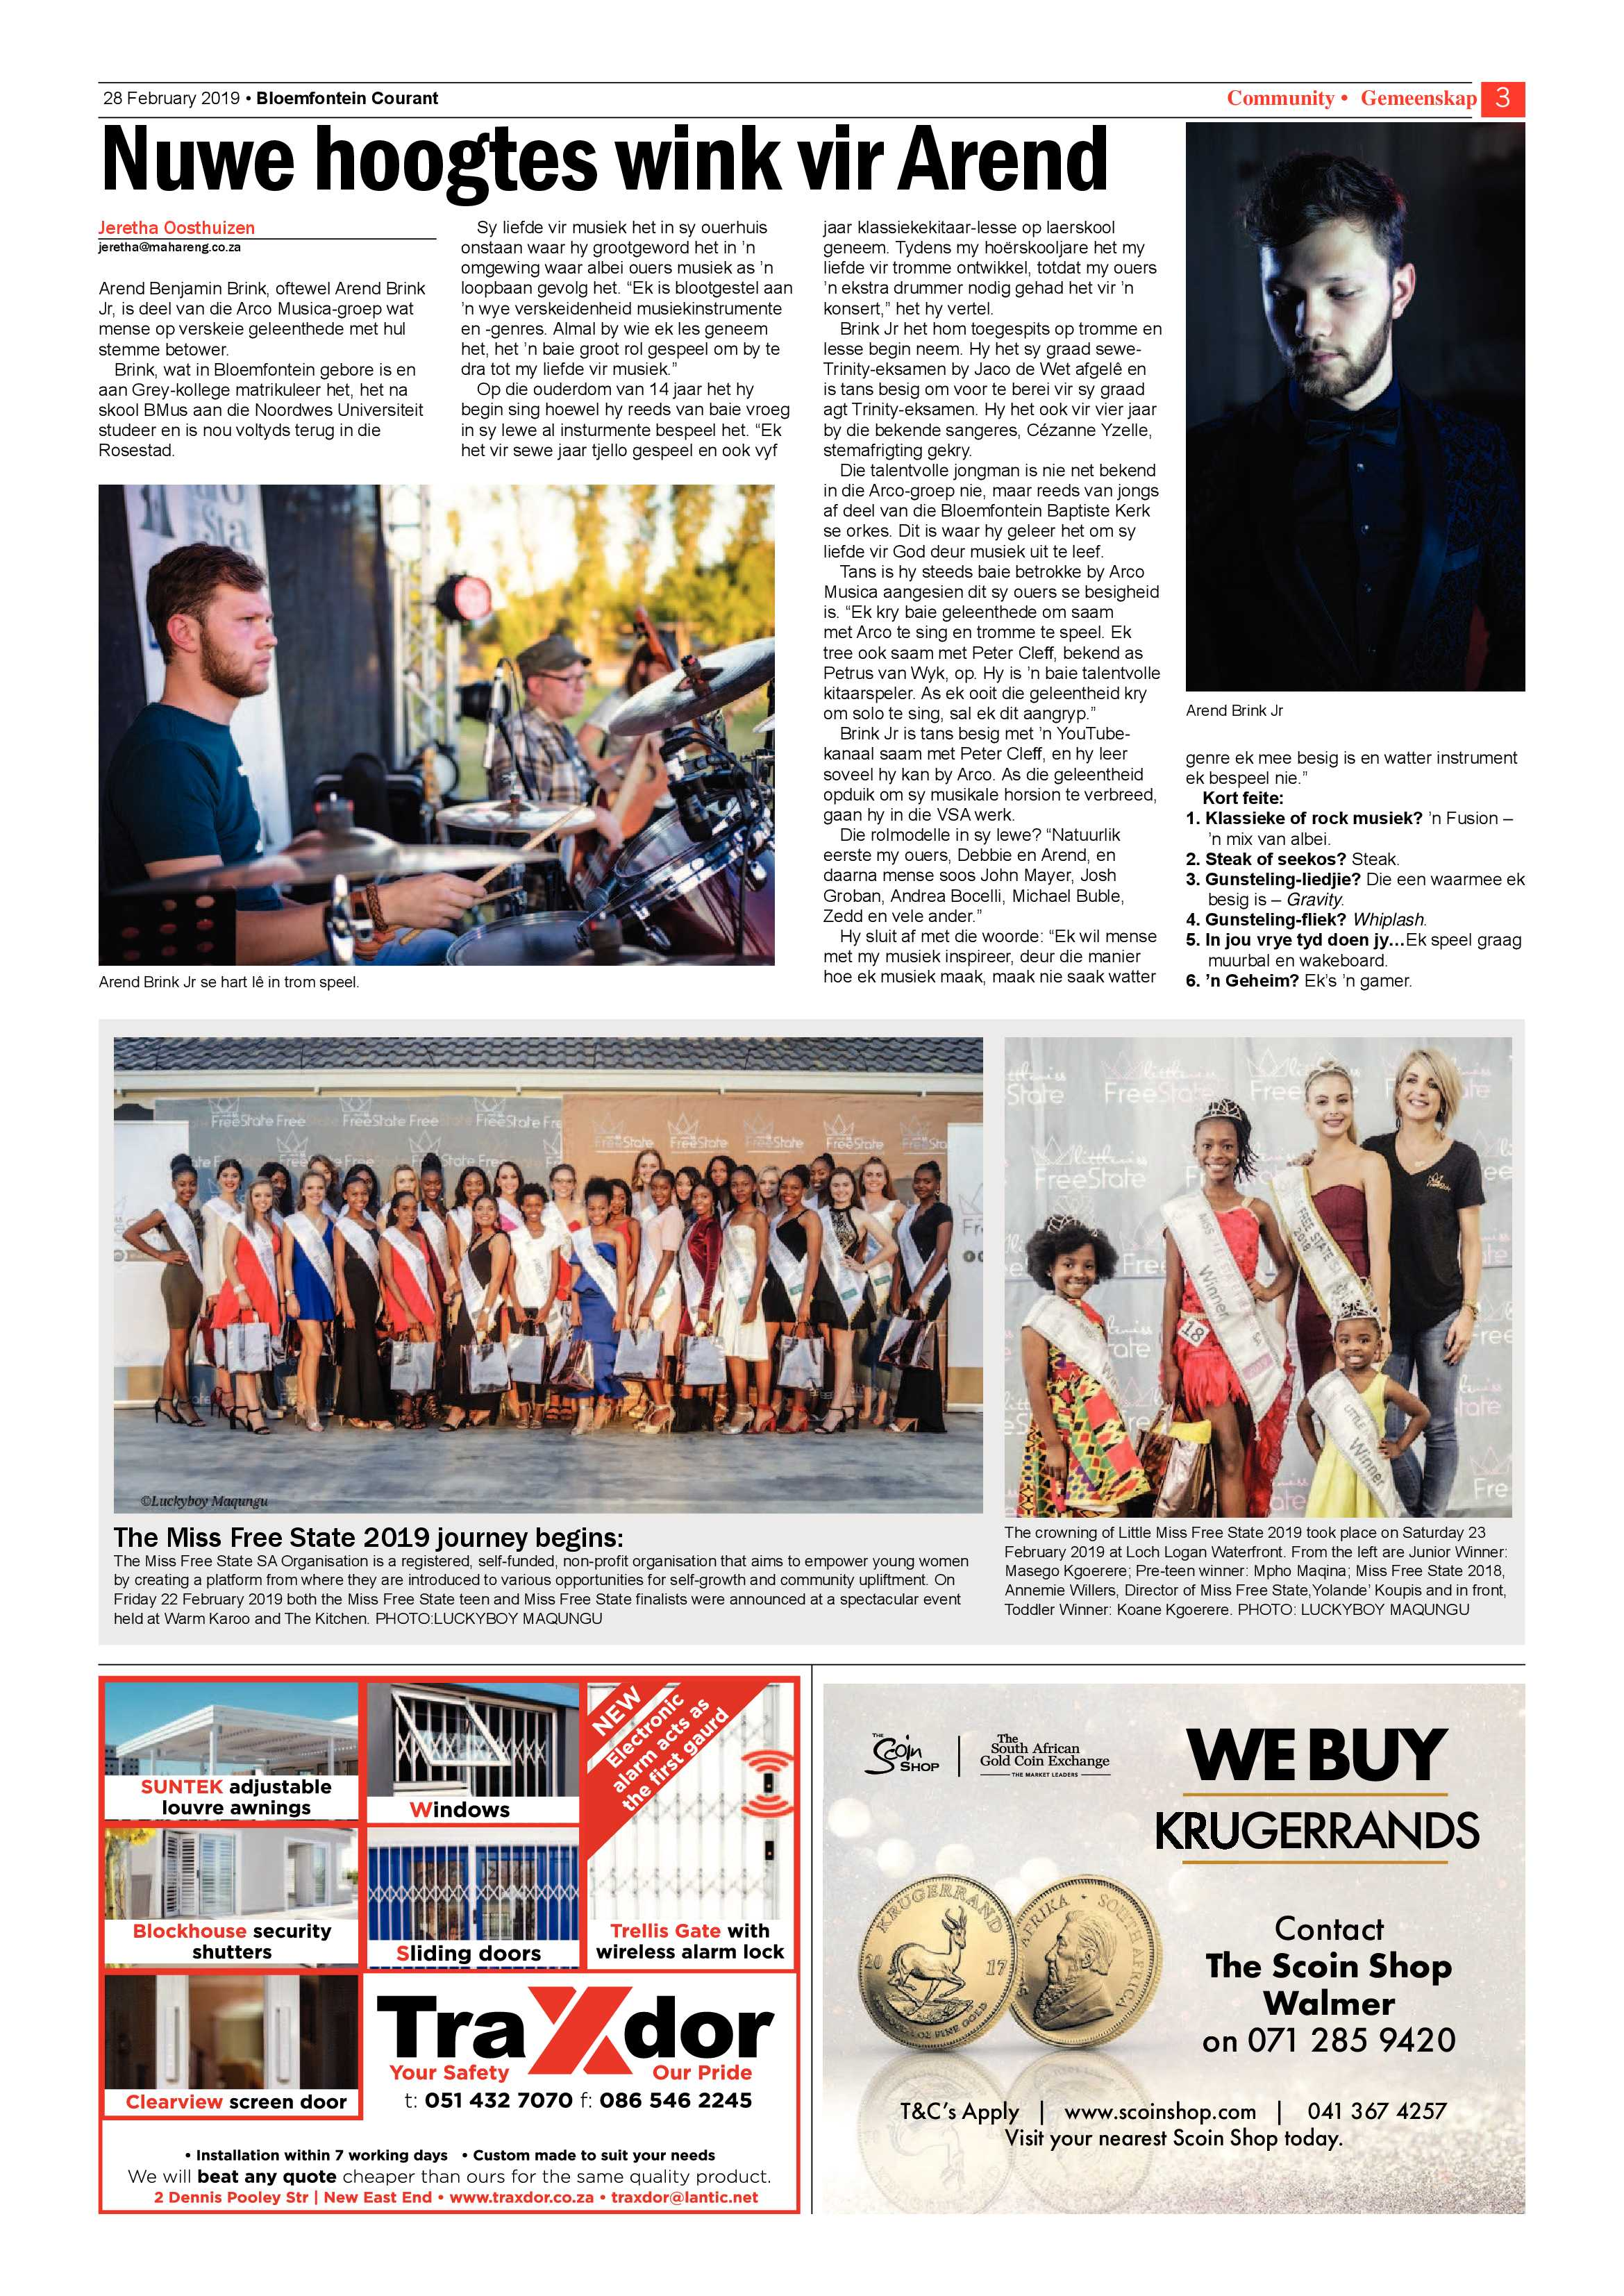 courant-28-february-2019-epapers-page-3